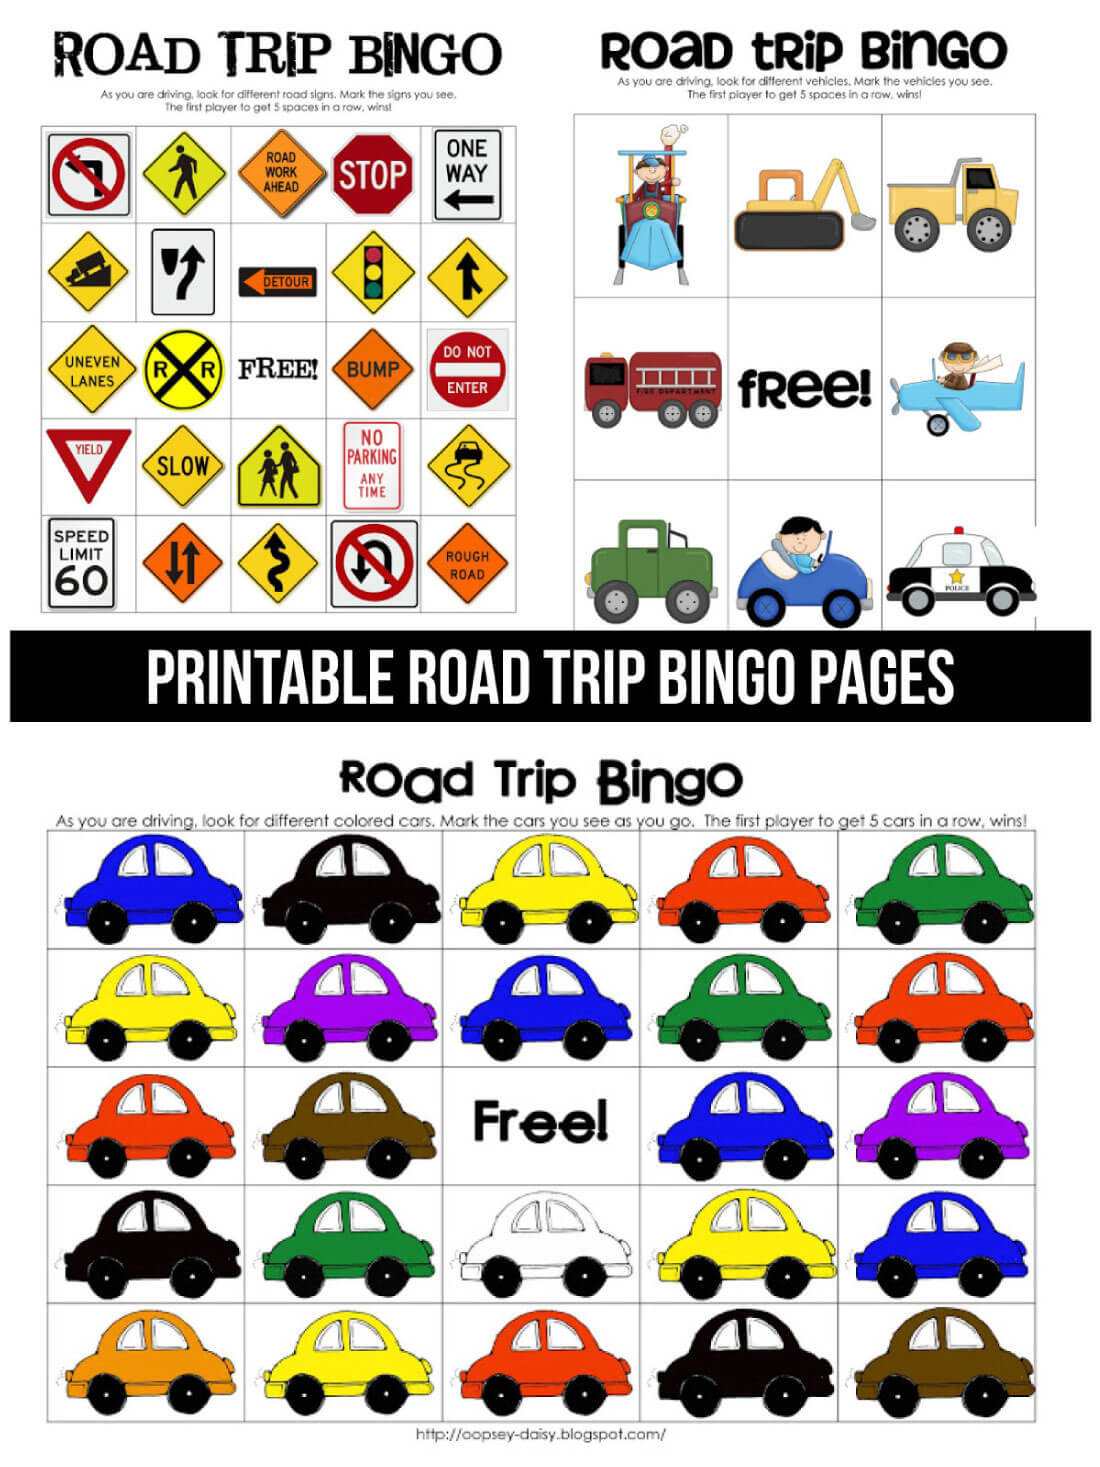 photograph relating to Travel Bingo Printable identify Printable Street Holiday BINGO